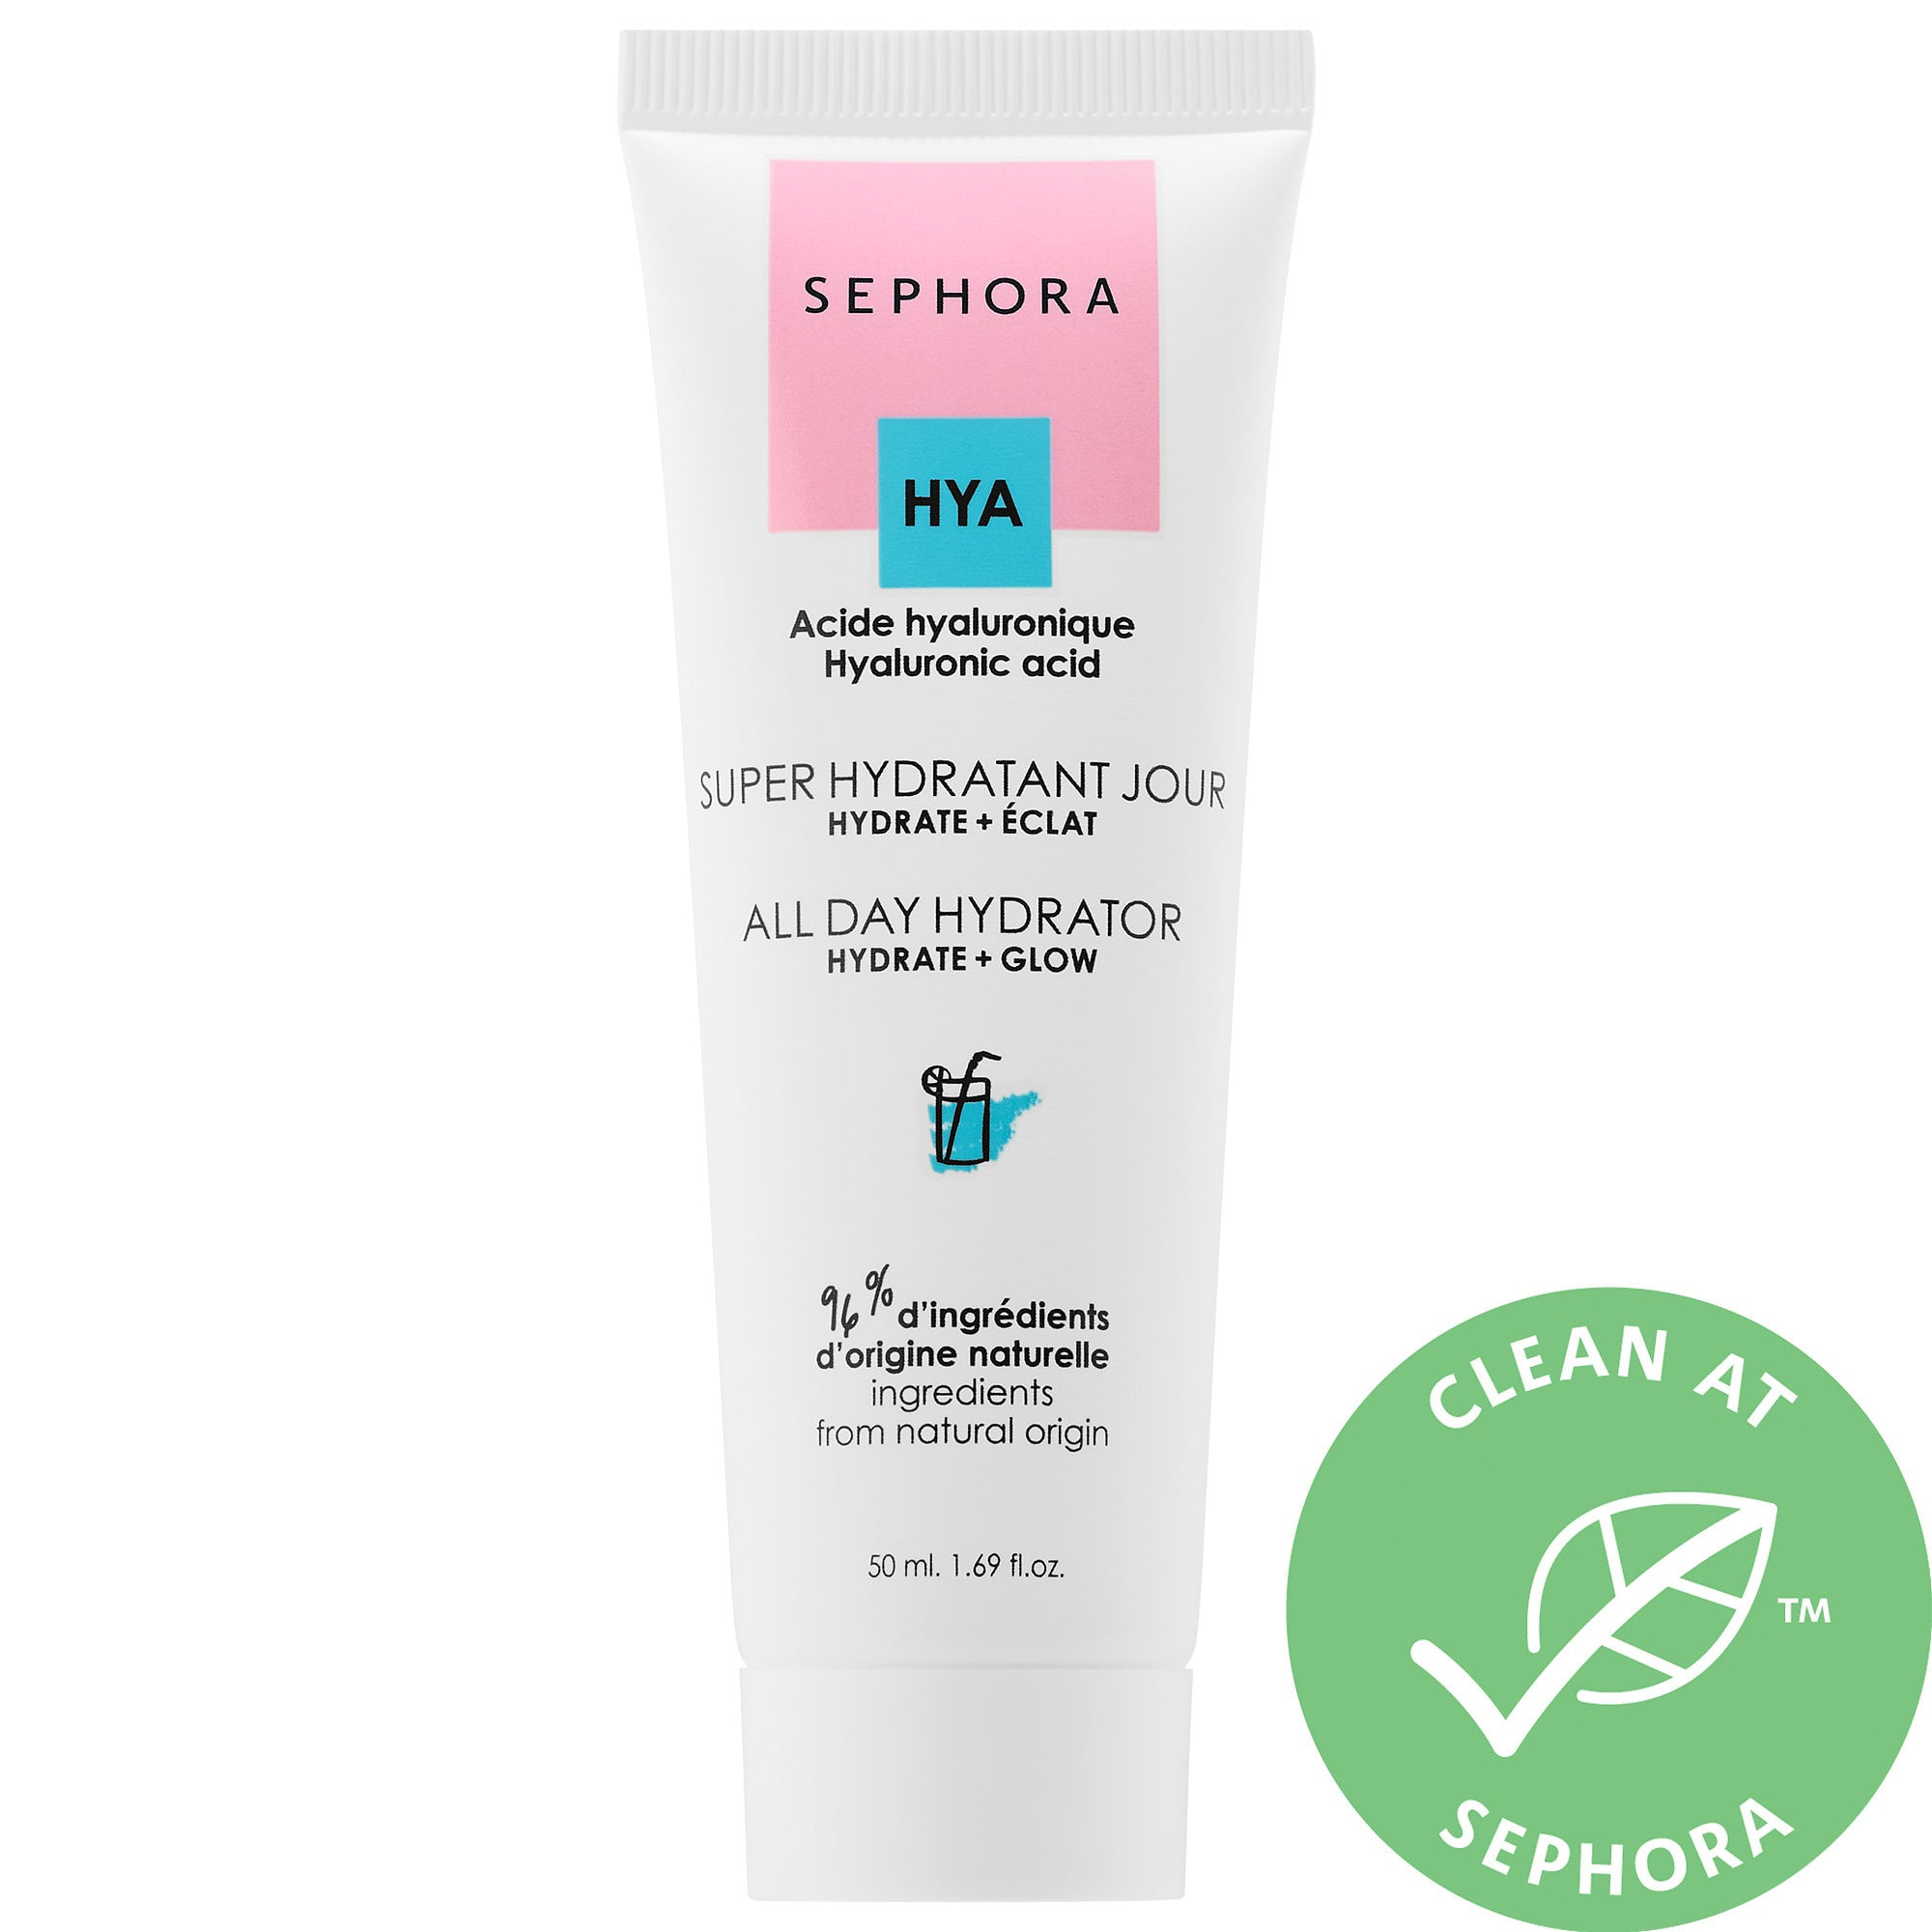 All Day Hydrator - Hydrate & Glow